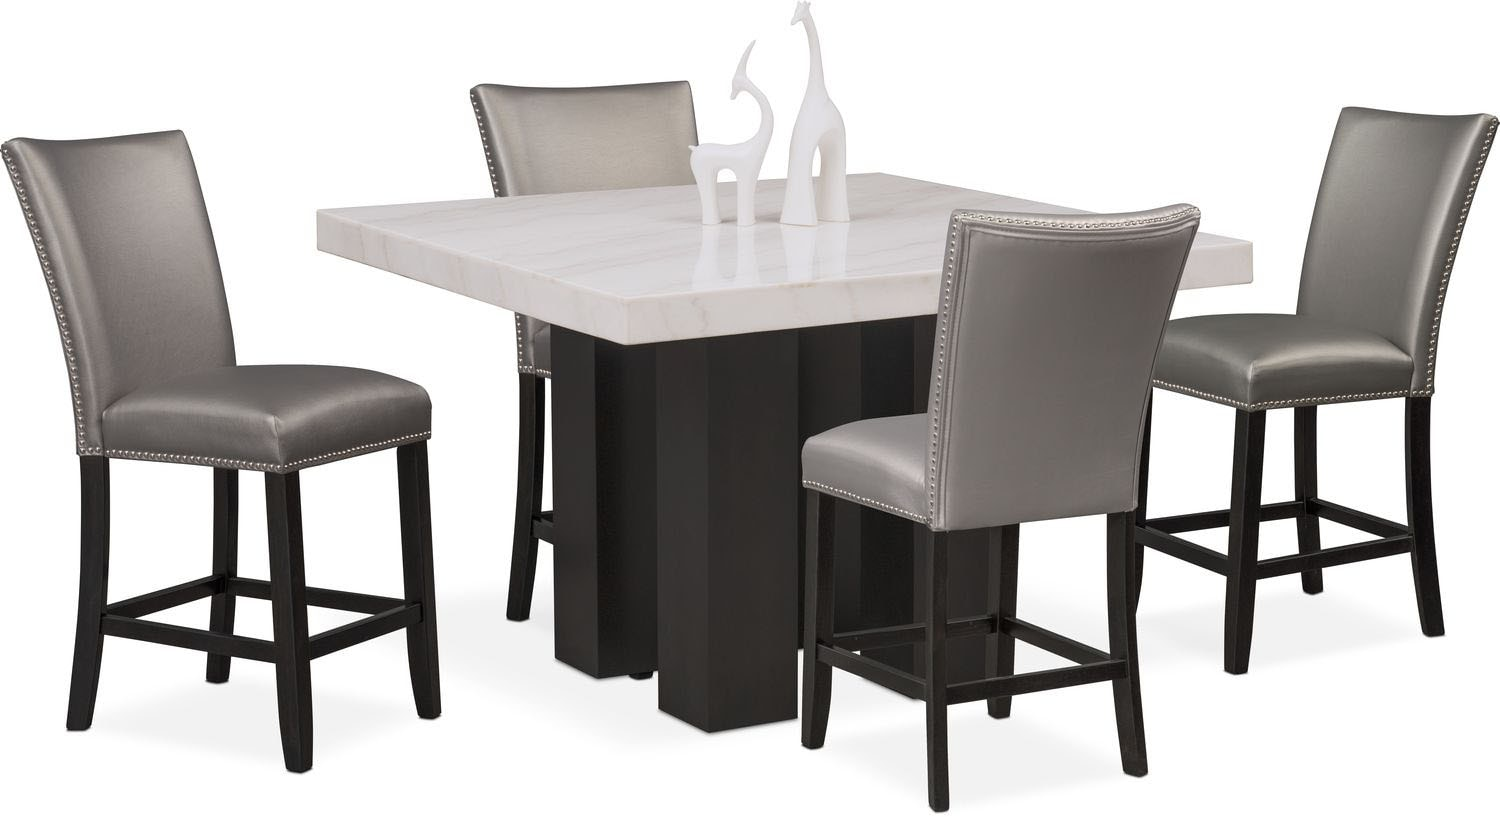 Dining Room Furniture - Artemis Counter-Height Dining Table and 4 Upholstered Stools